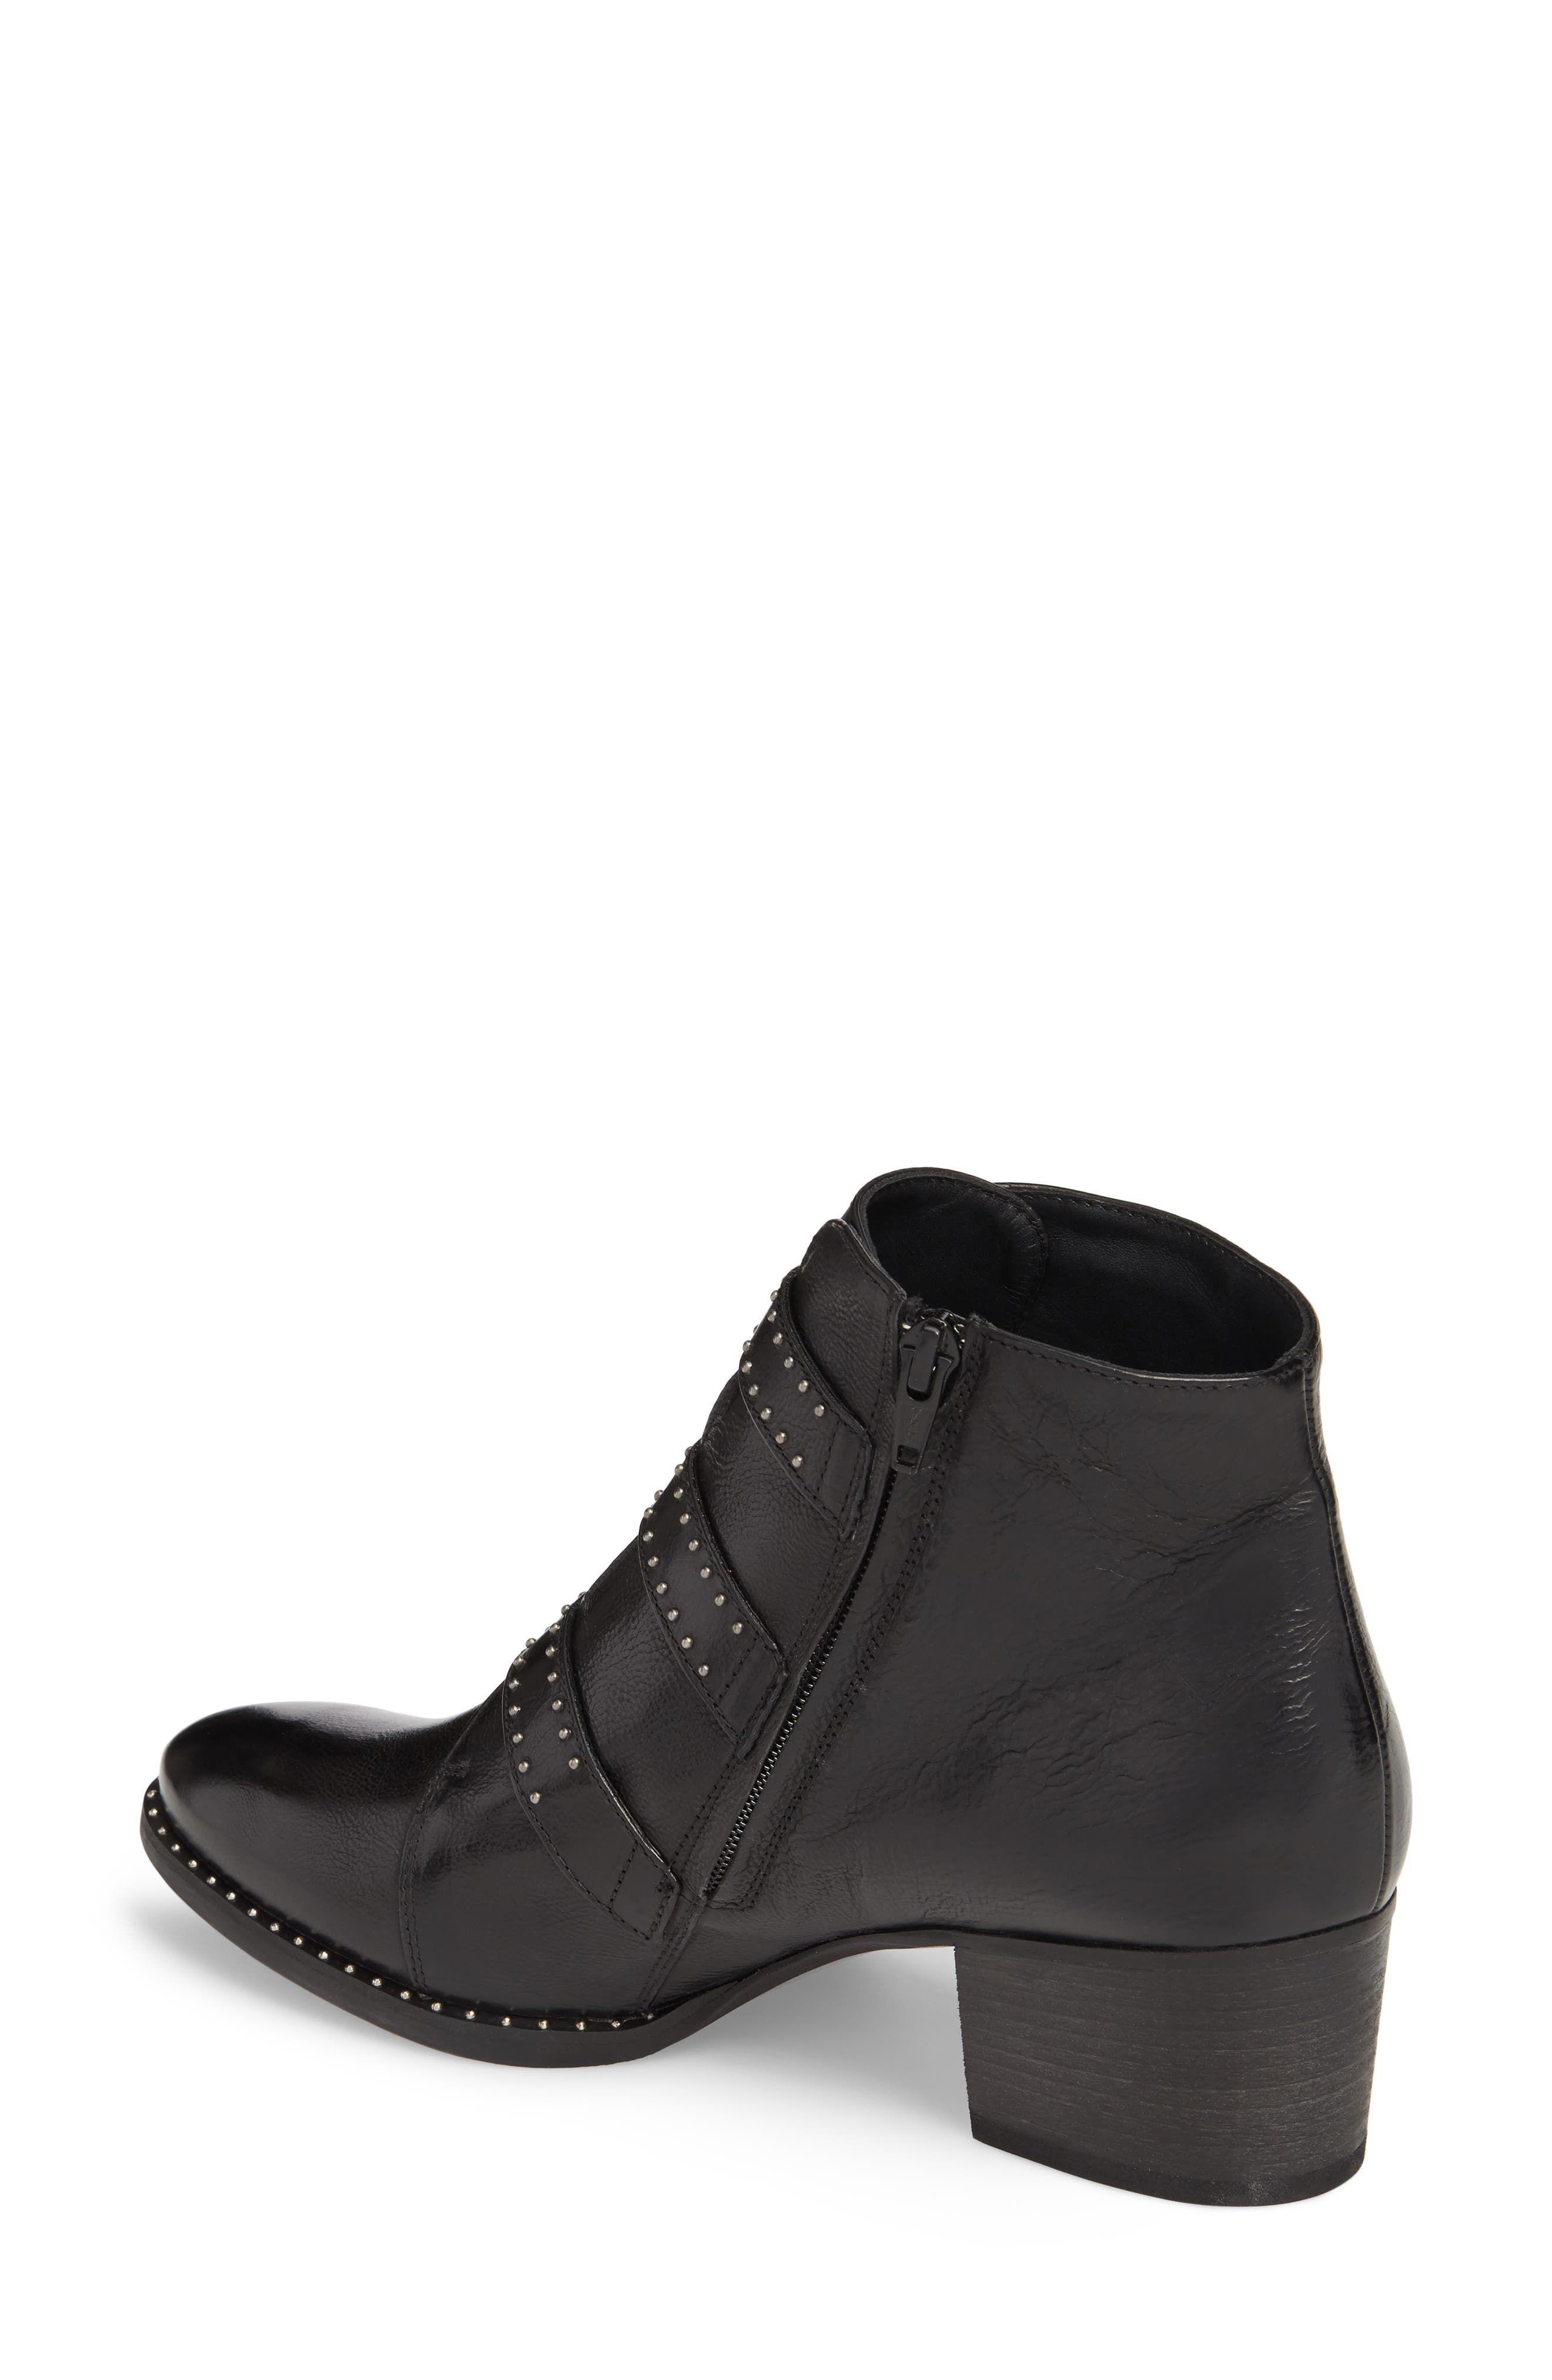 PAUL GREEN, Soho Bootie, Alternate thumbnail 2, color, BLACK LEATHER